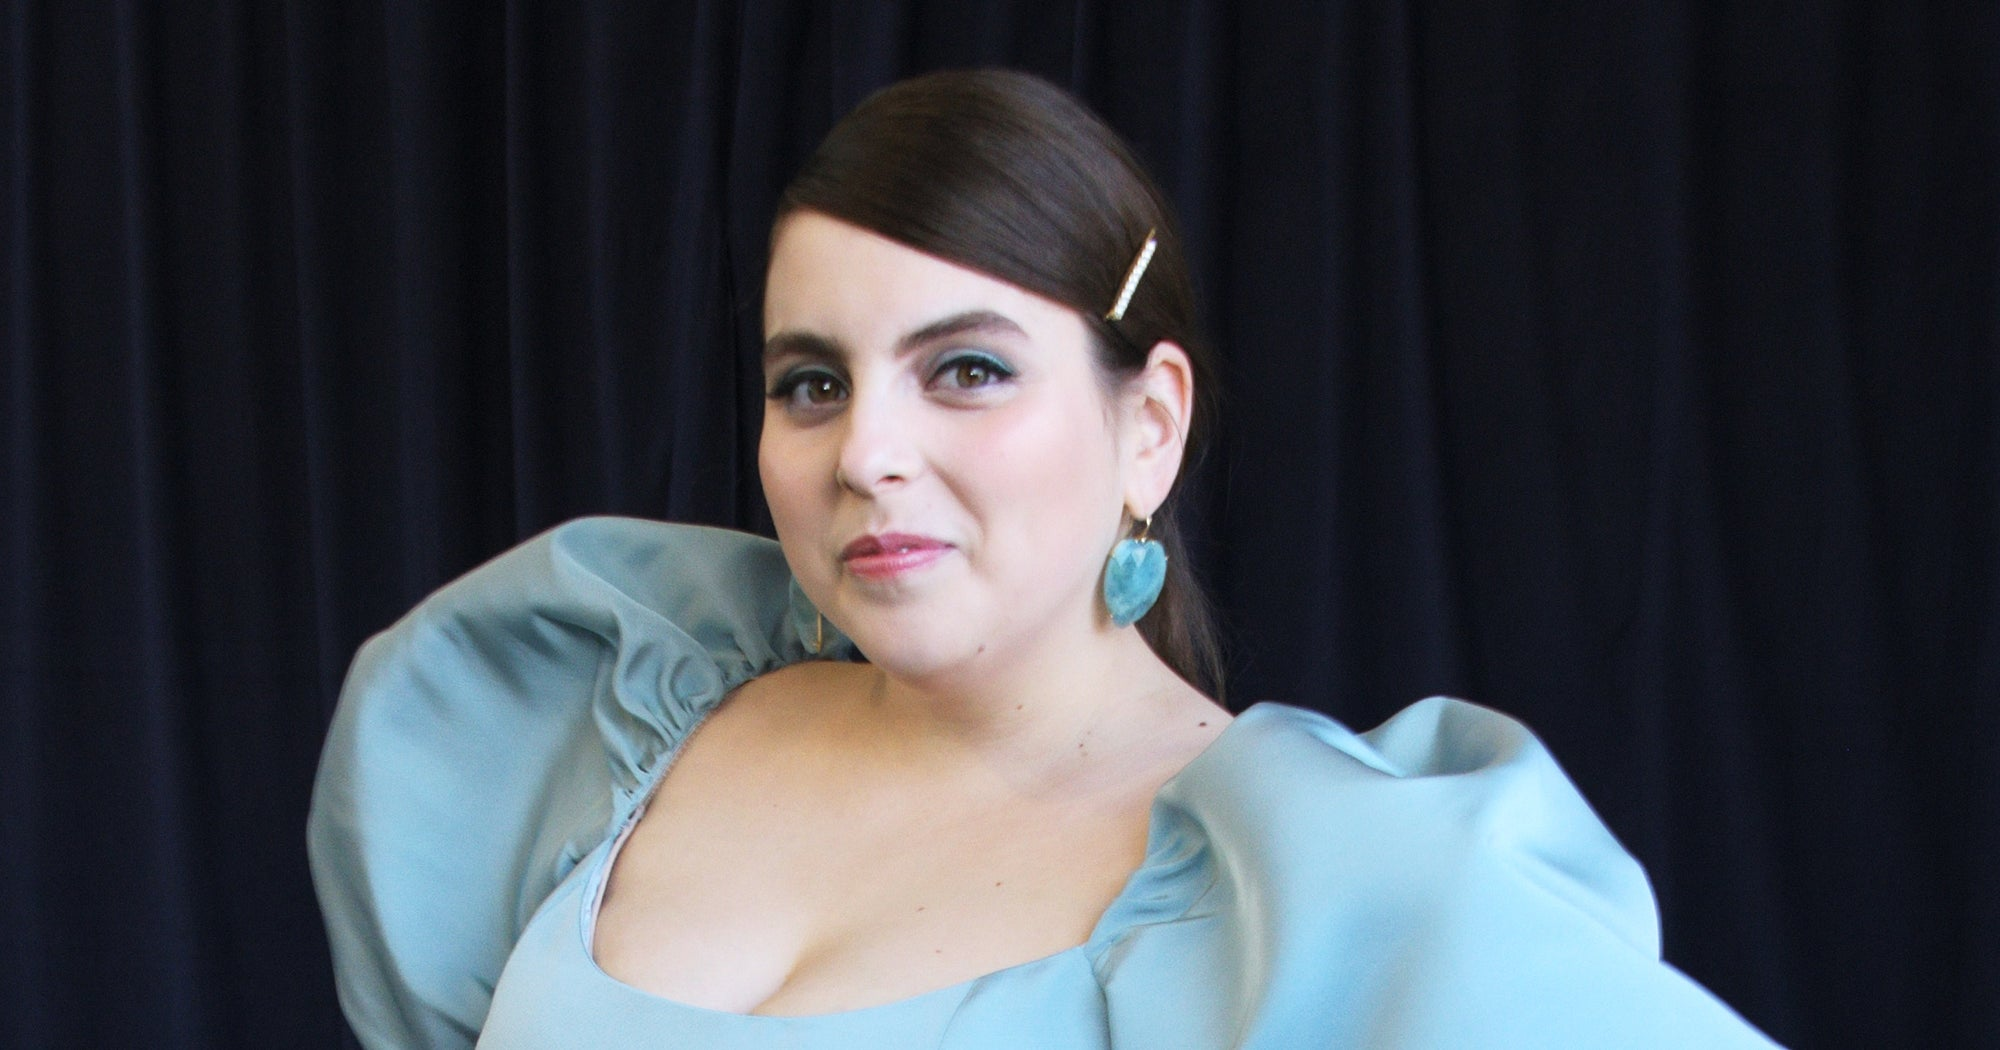 Here's Our First Look At Beanie Feldstein As Monica Lewinsky In American Crime Story